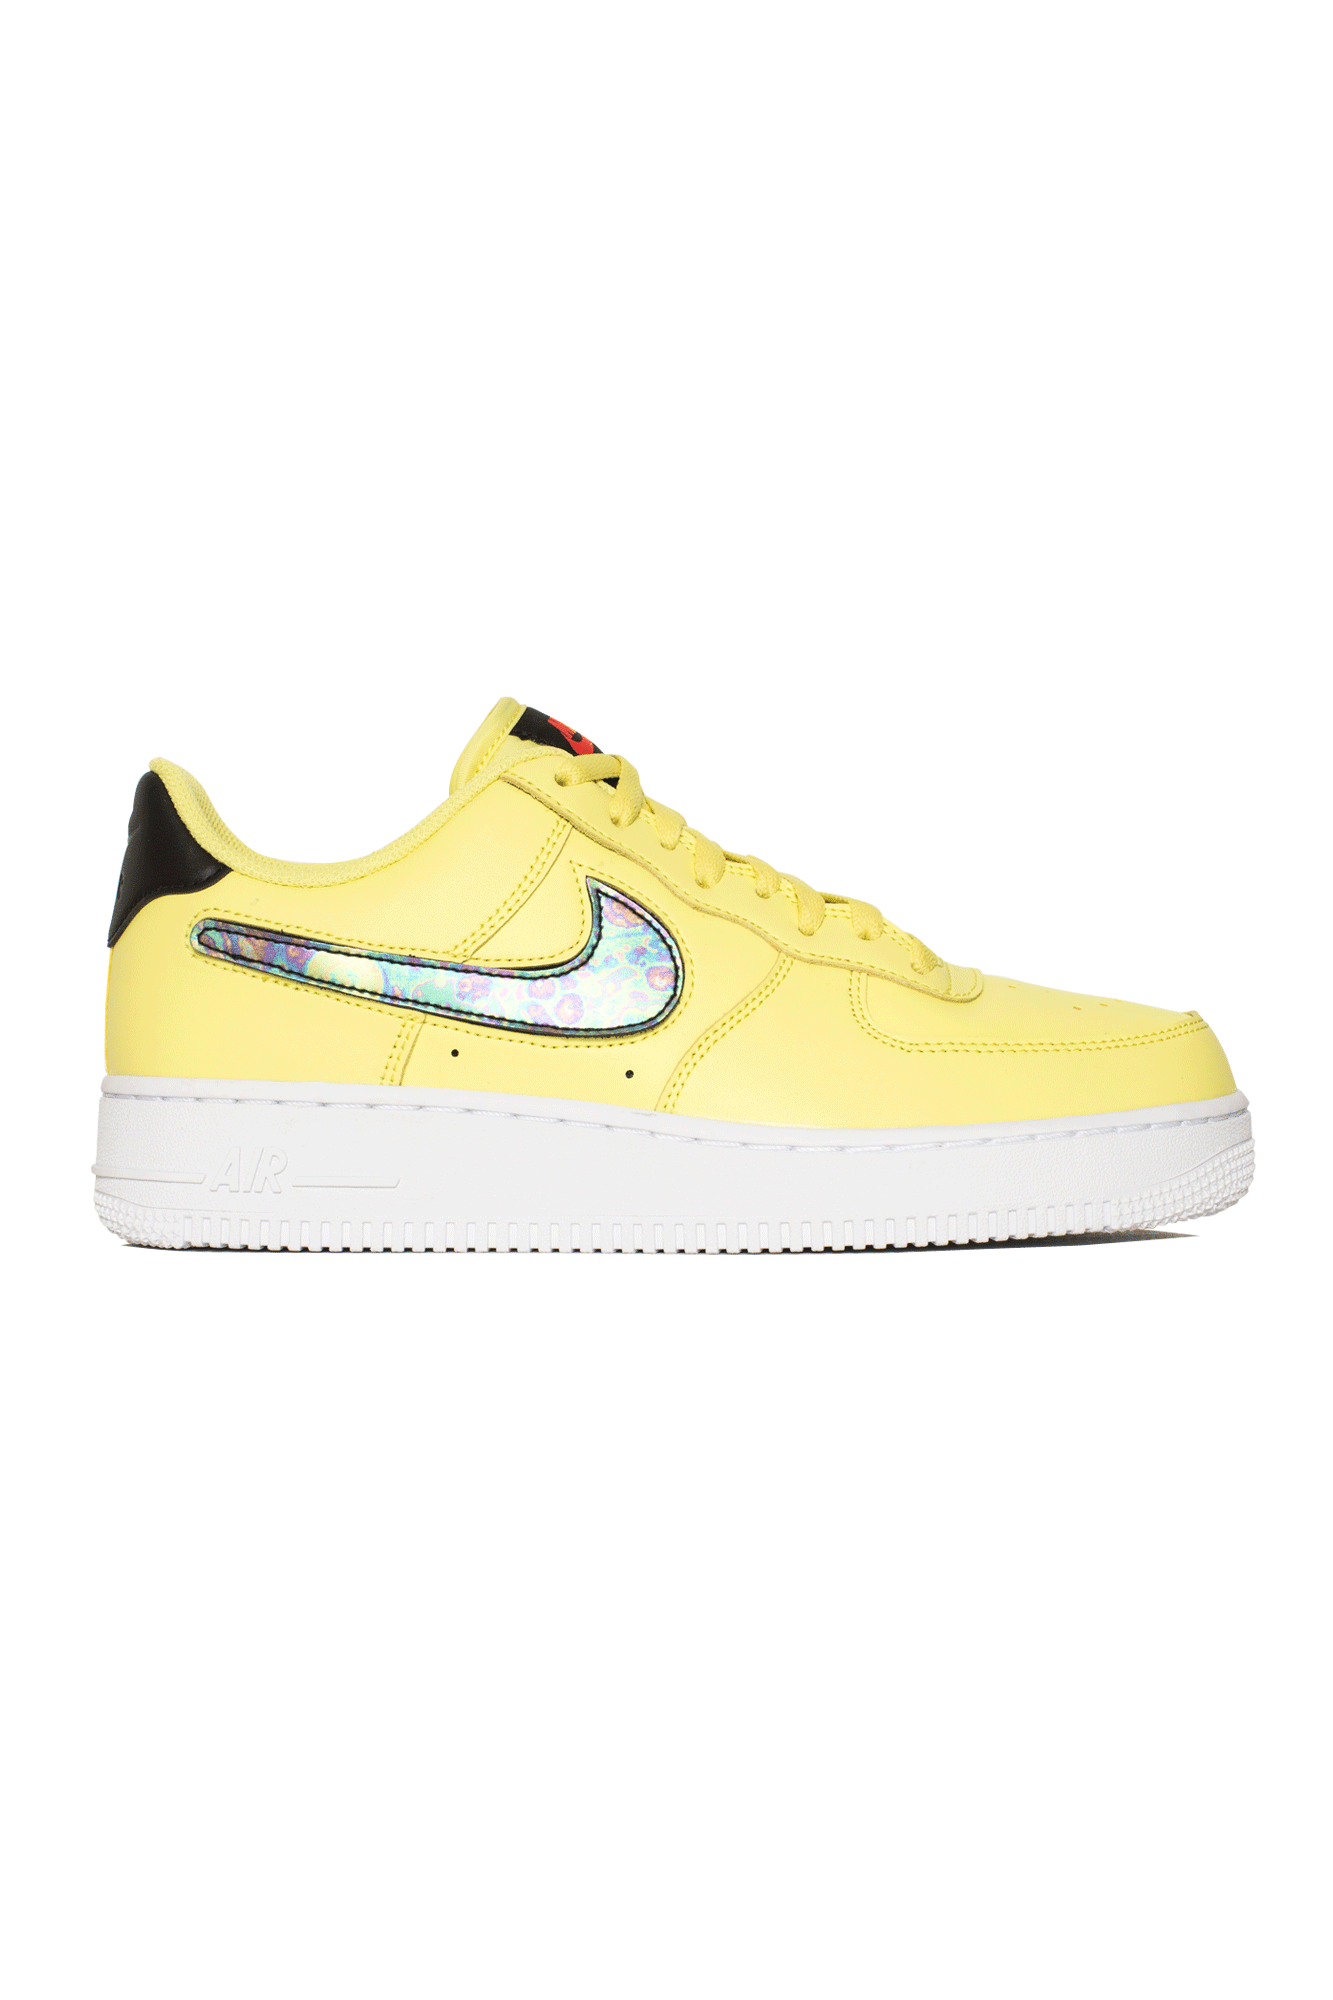 AIR FORCE 1 '07 LV8 3 Yellow